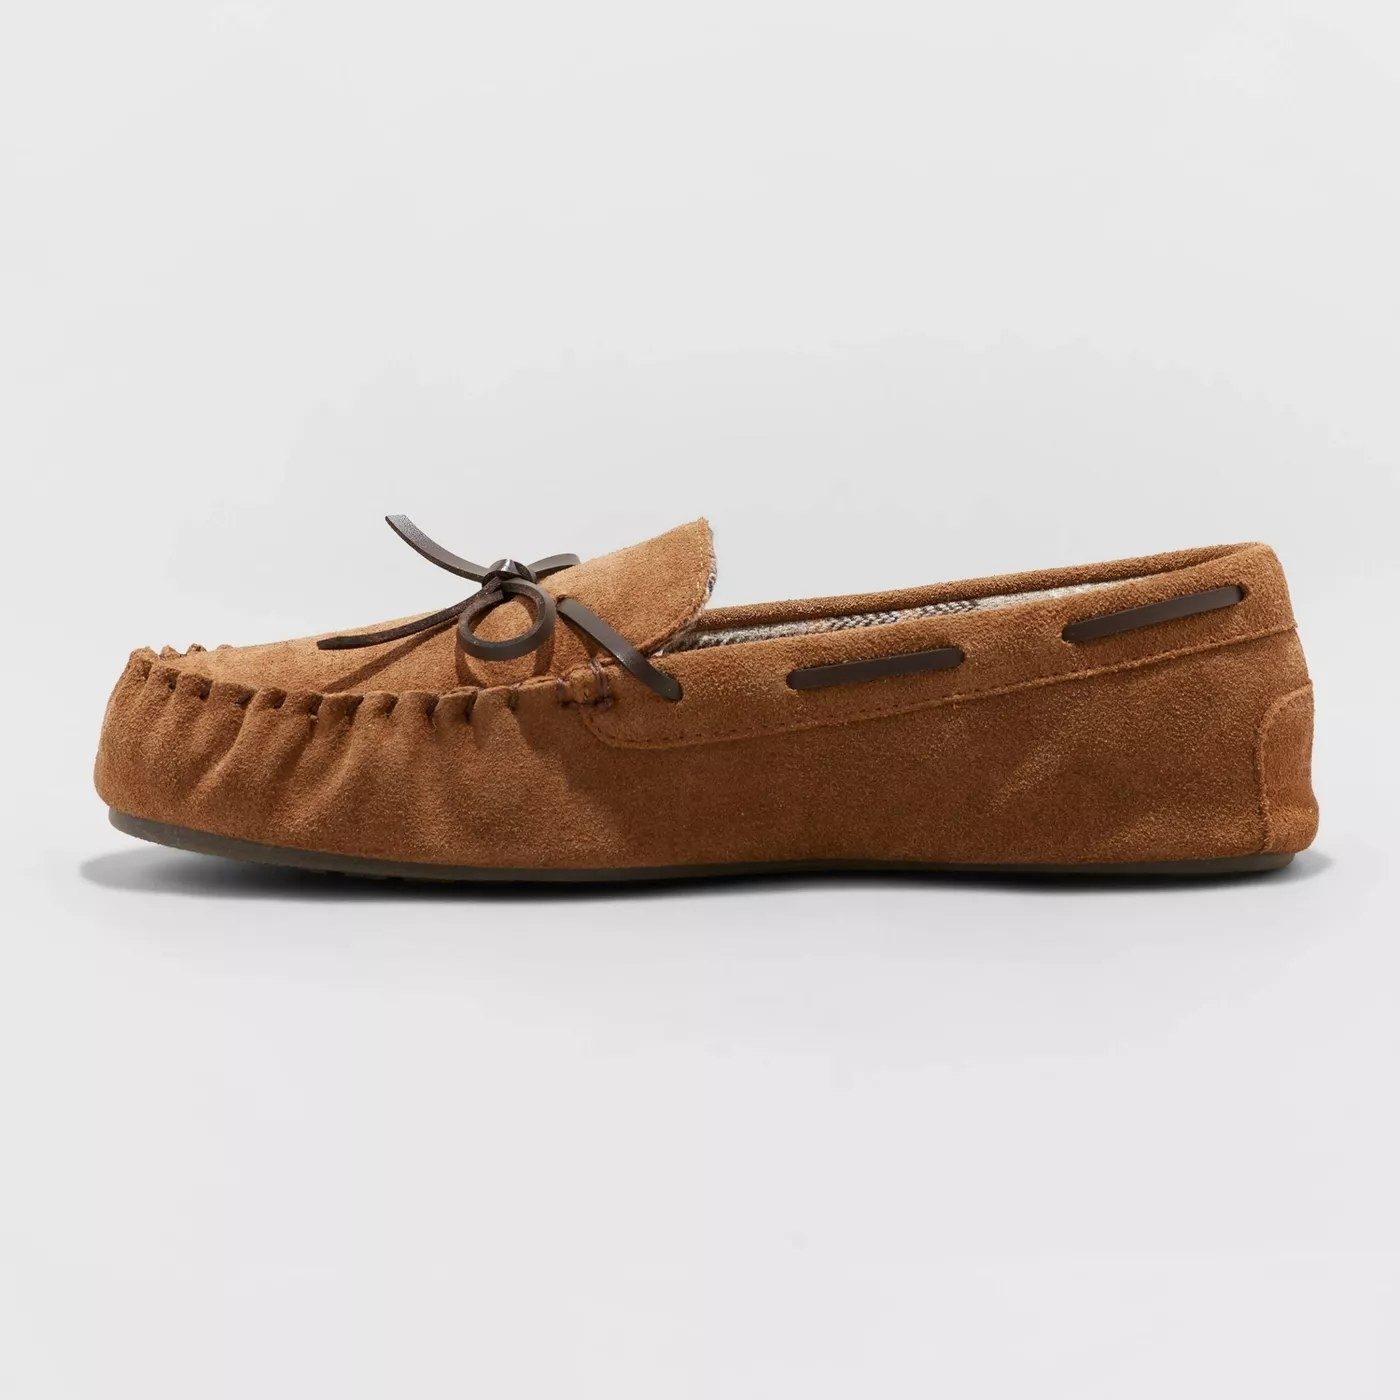 A moccasin slipper with leather laces